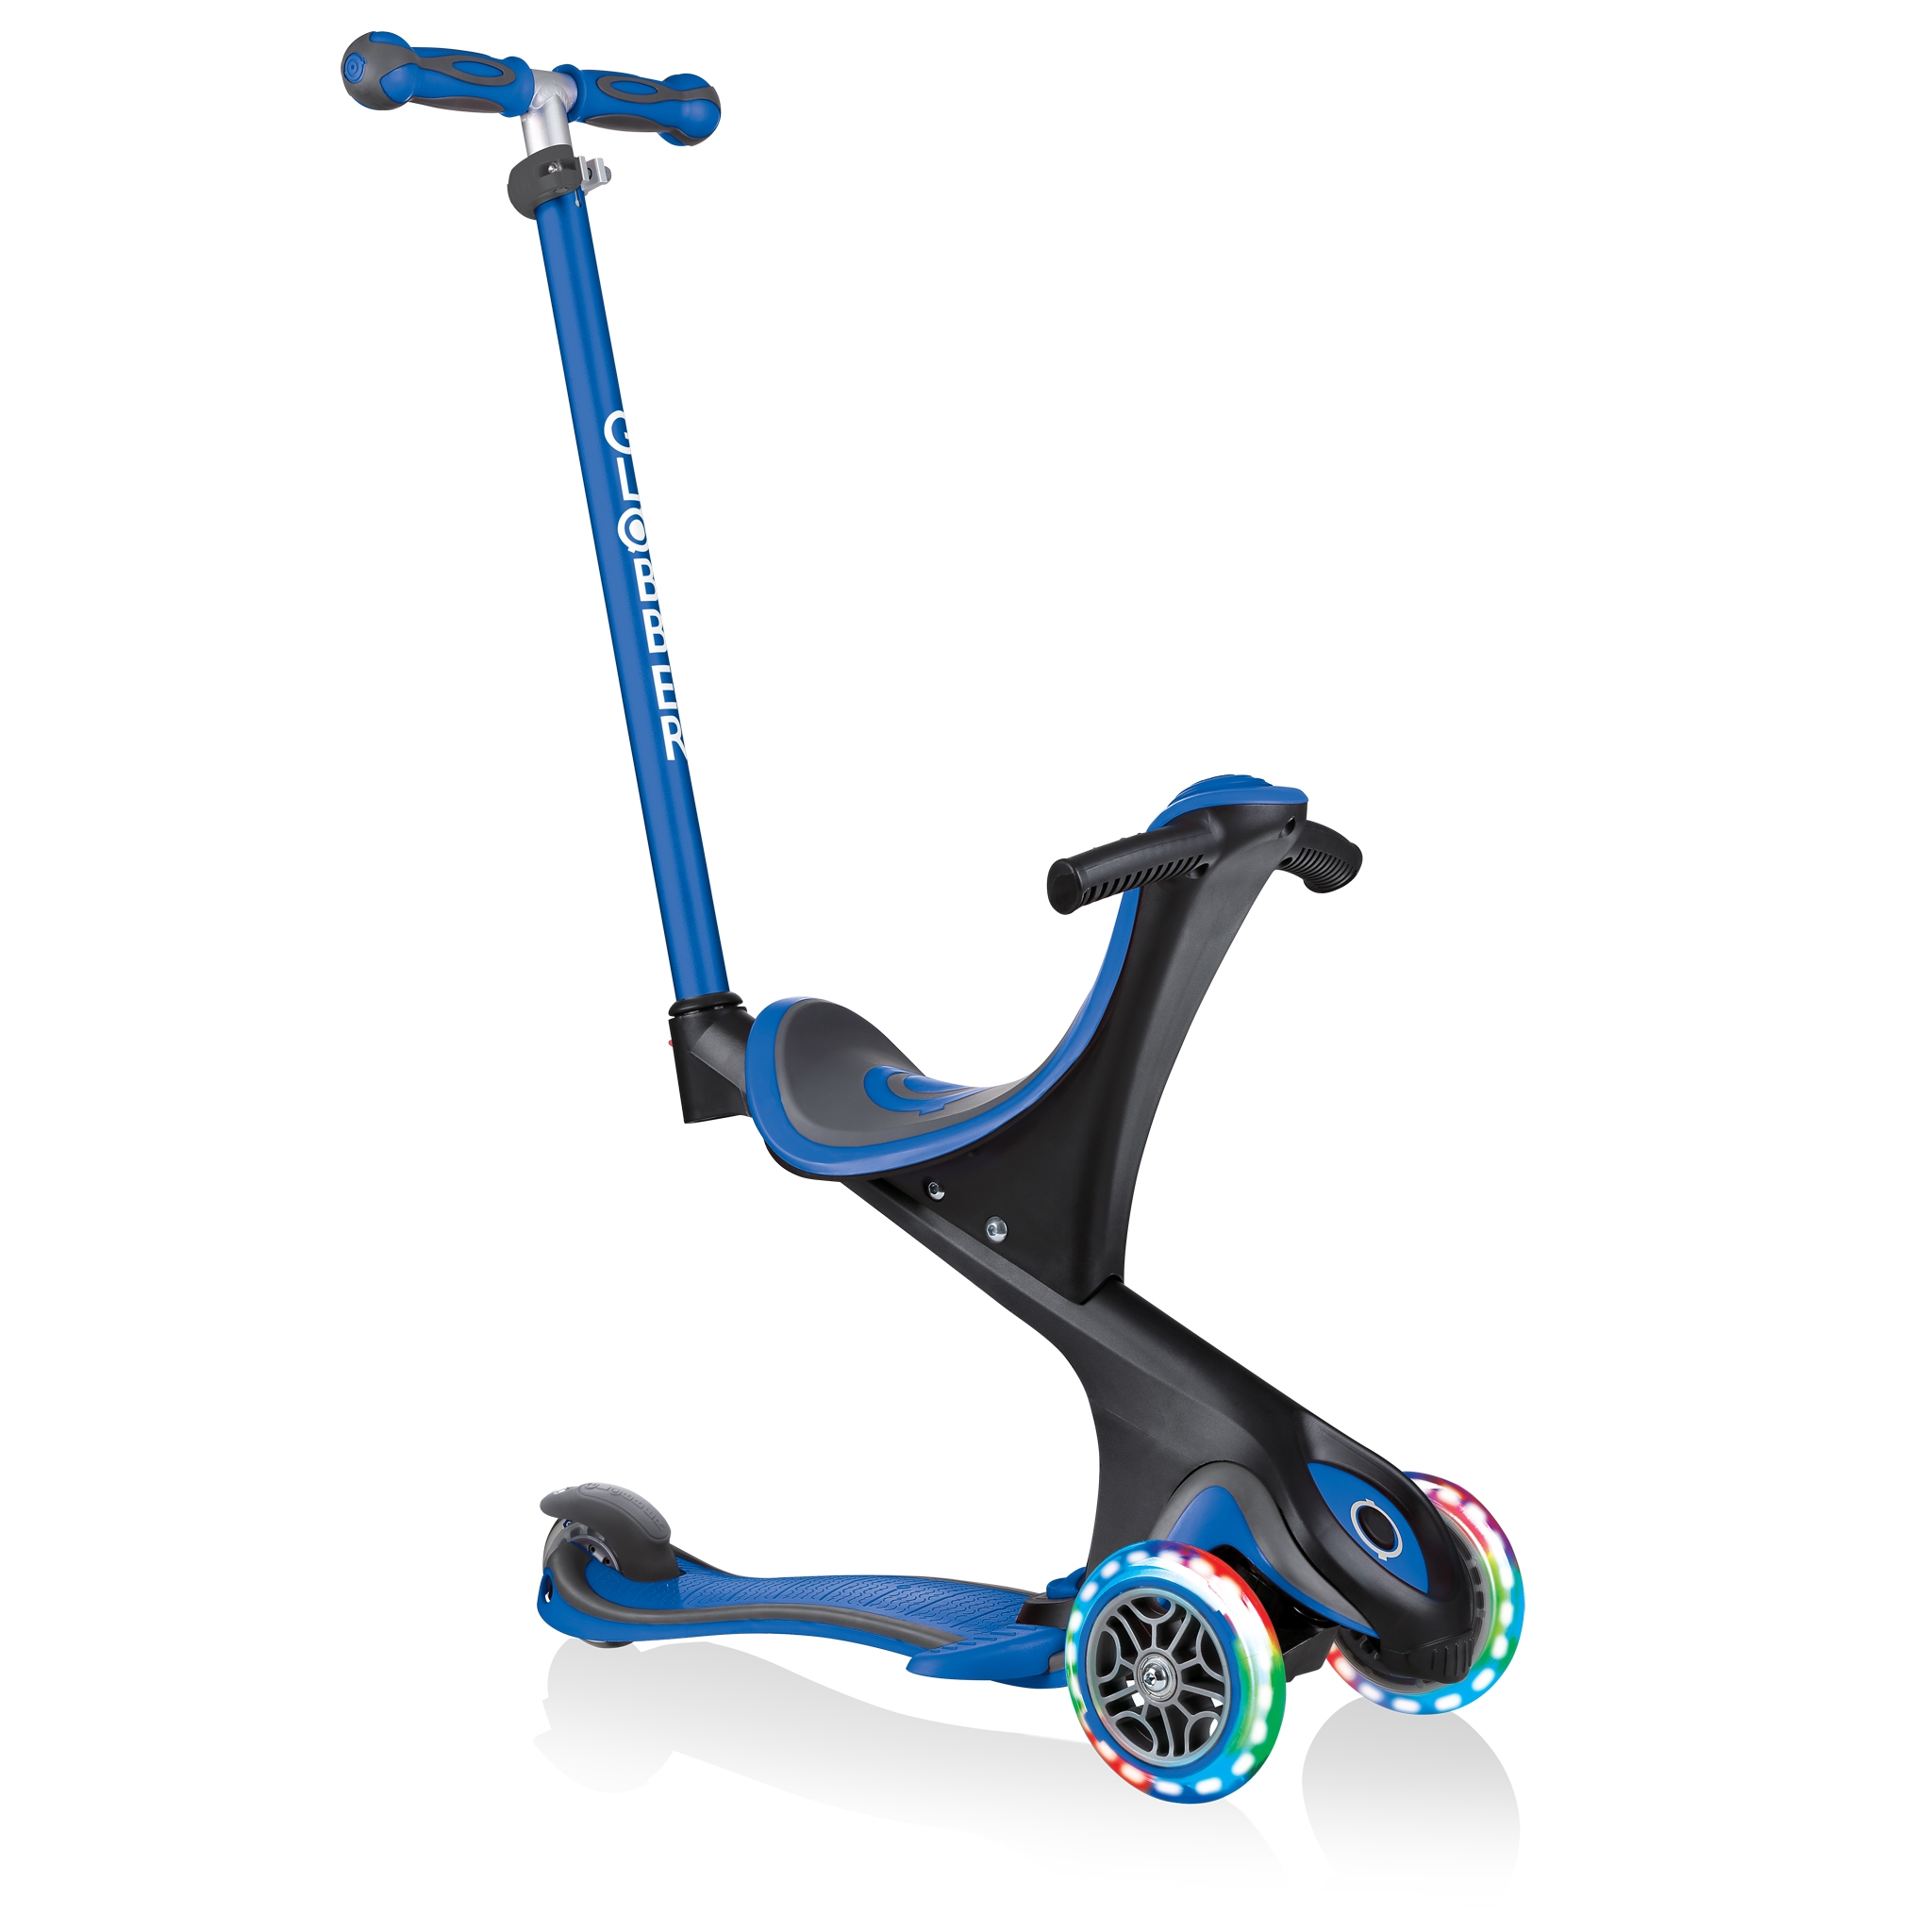 GO-UP-COMFORT-LIGHTS-scooter-with-seat-with-extra-wide-seat-navy-blue